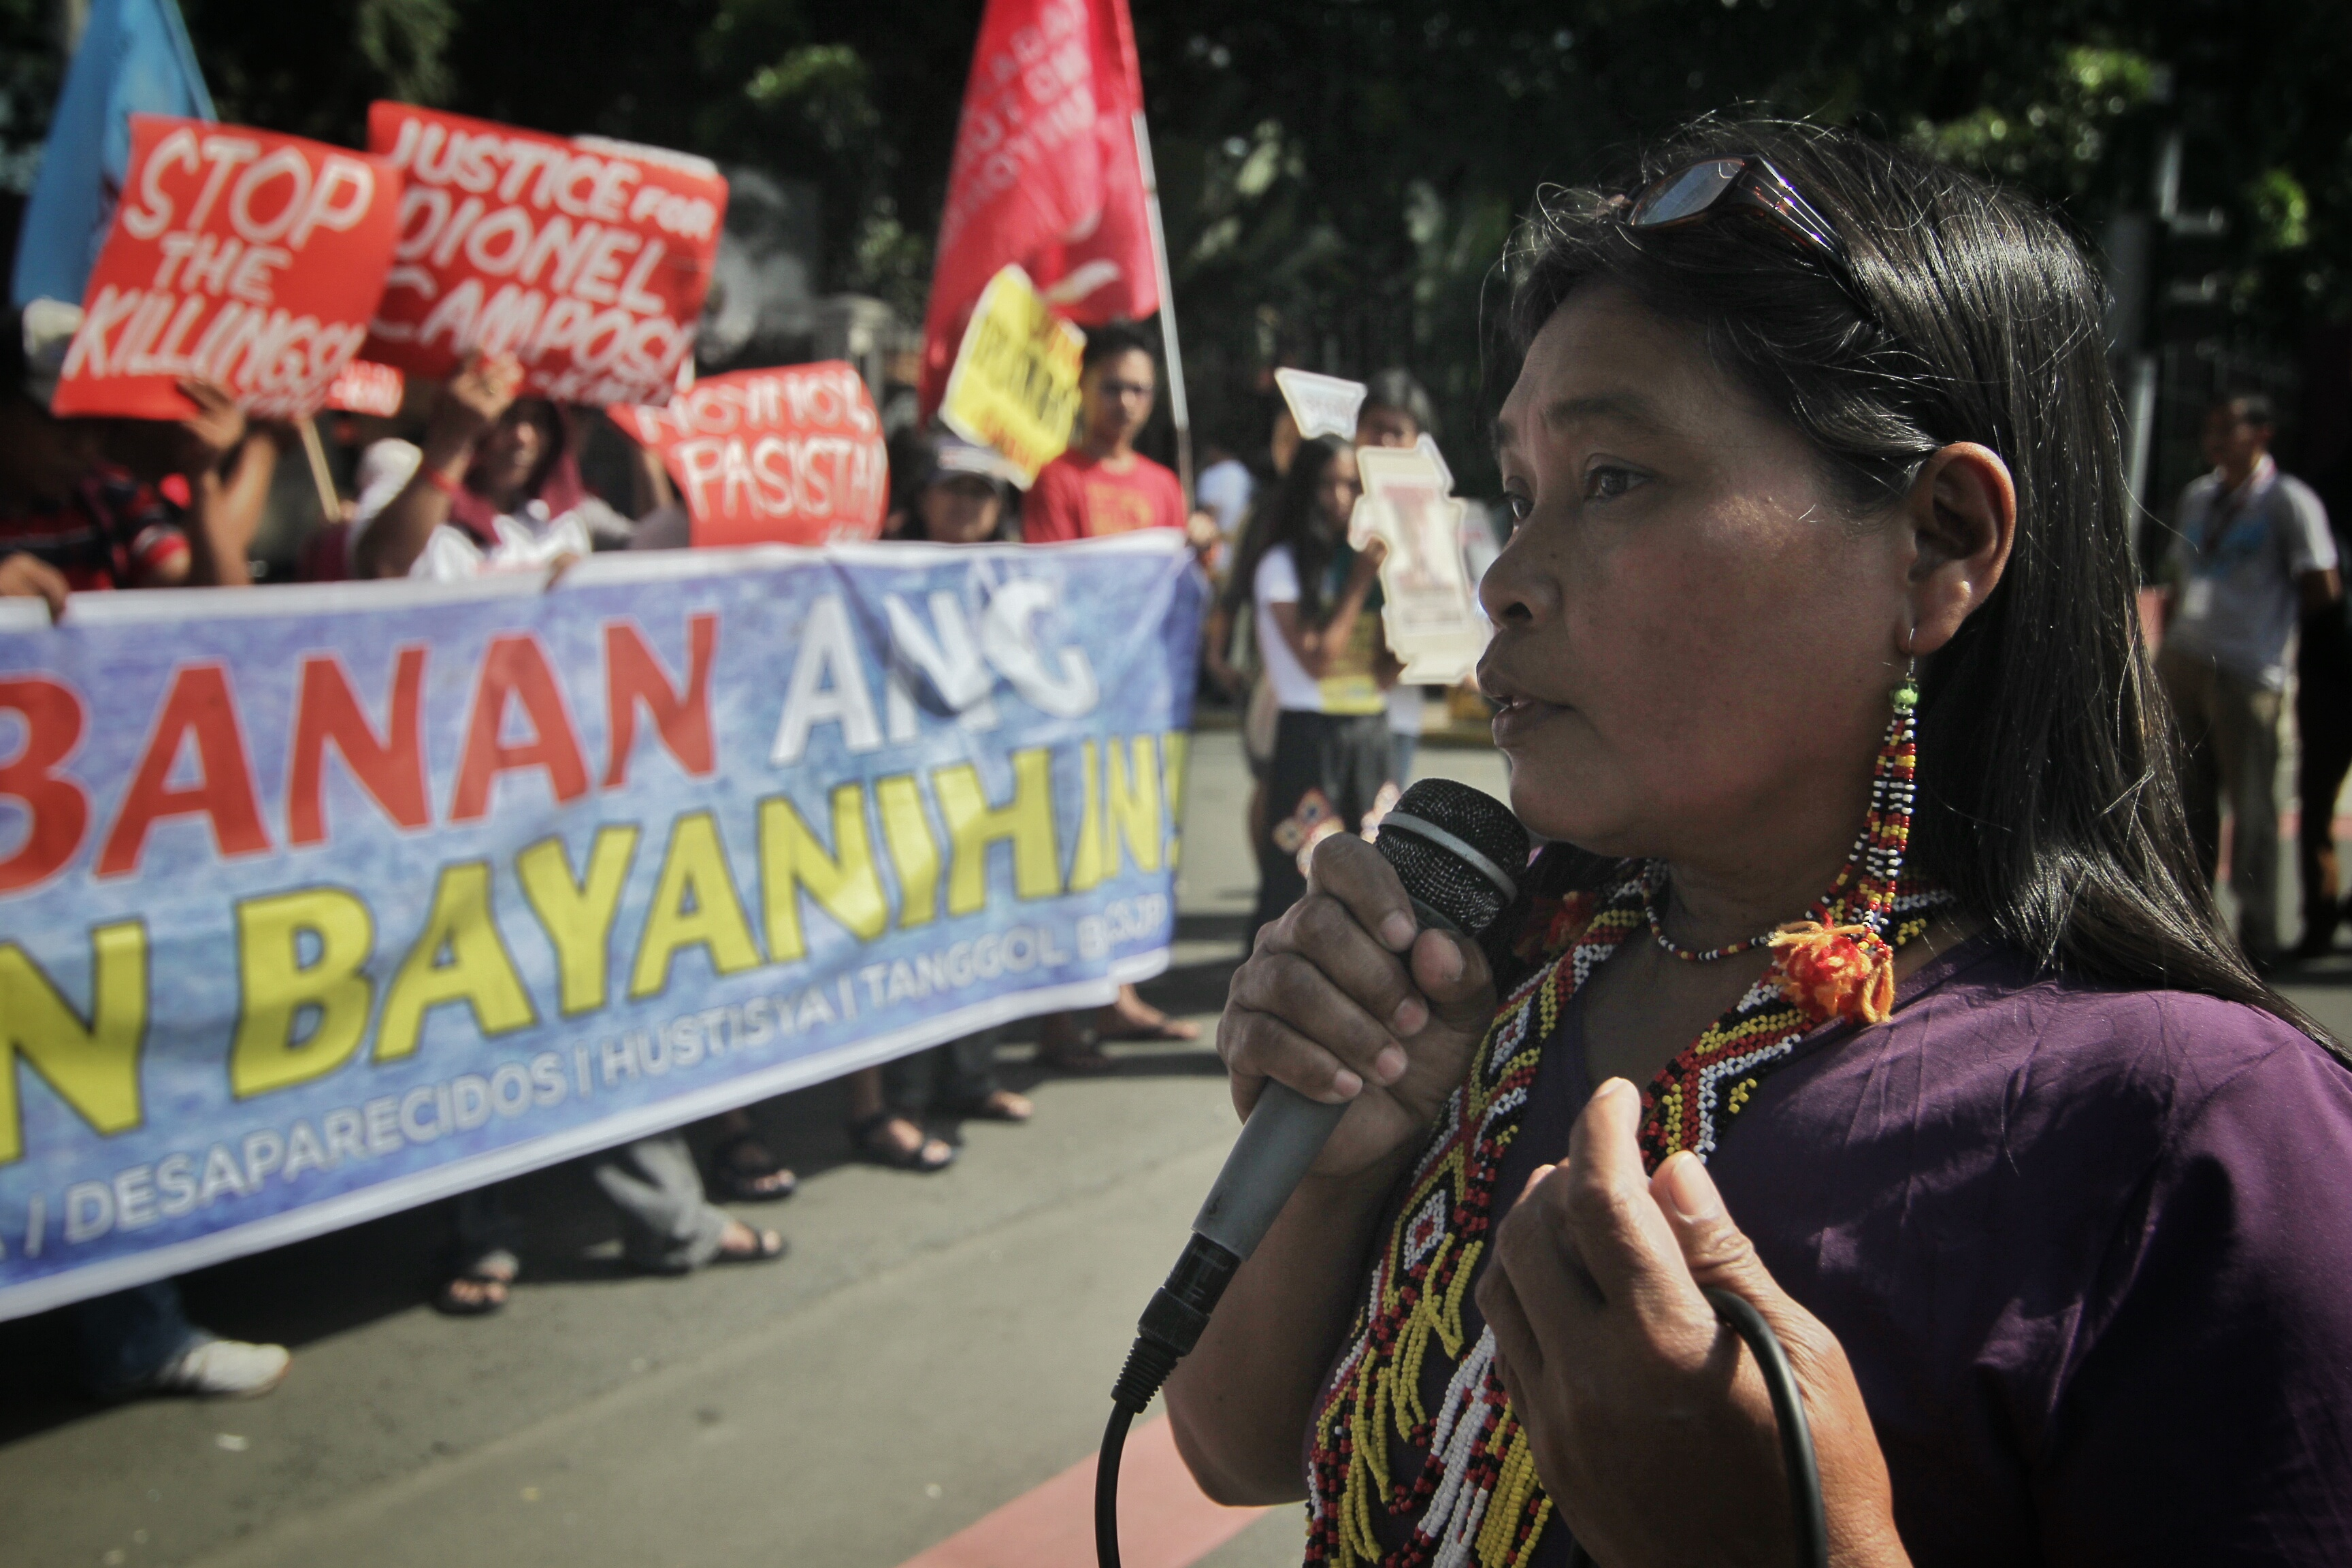 STOP LUMAD KILLINGS. Lumads, students, church, and rights group stage a protest outside the House of Representatives during the deliberation of military's budget for 2016. Sheina Campos, 12, Eufemia Cullamat, and other witnesses during the September 1 killings in Lianga, Surigao del Sur of tribal leaders join the protest action. Photo by Vincent Go/Rappler